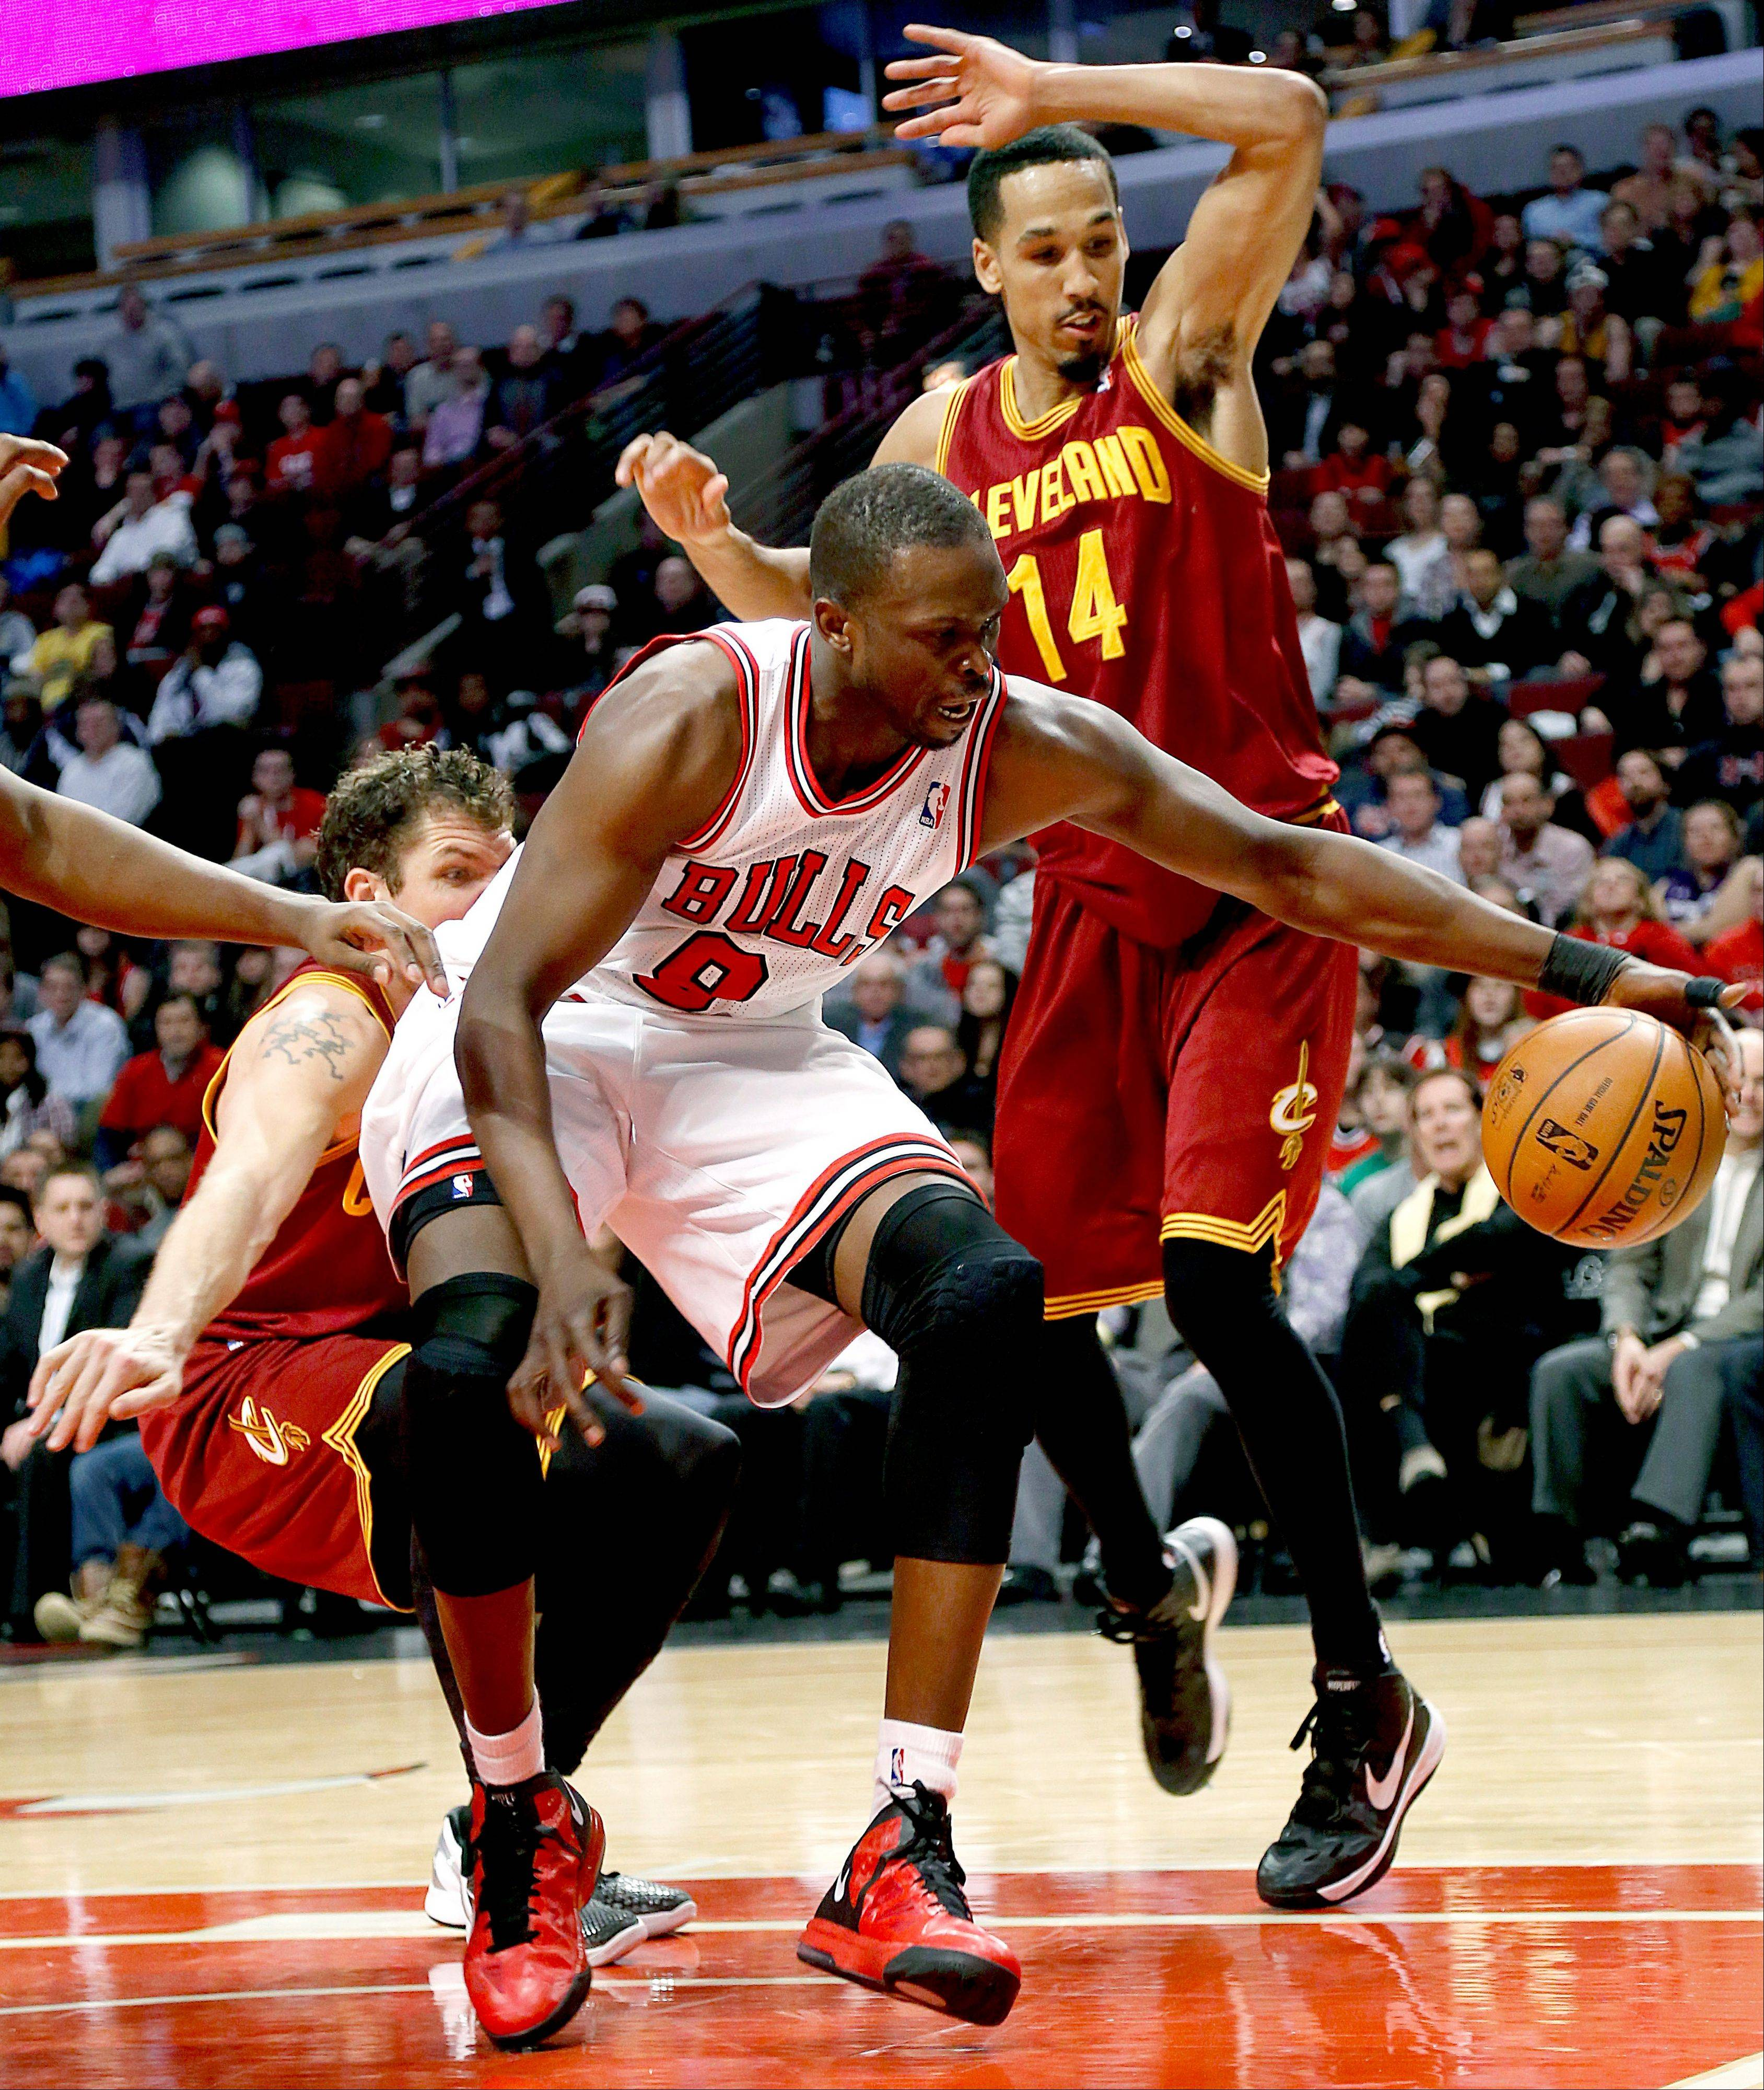 The Bulls' Luol Deng keeps the ball inbounds despite pressure from the Cavaliers' Shaun Livingston (14) in the fourth quarter Tuesday night.